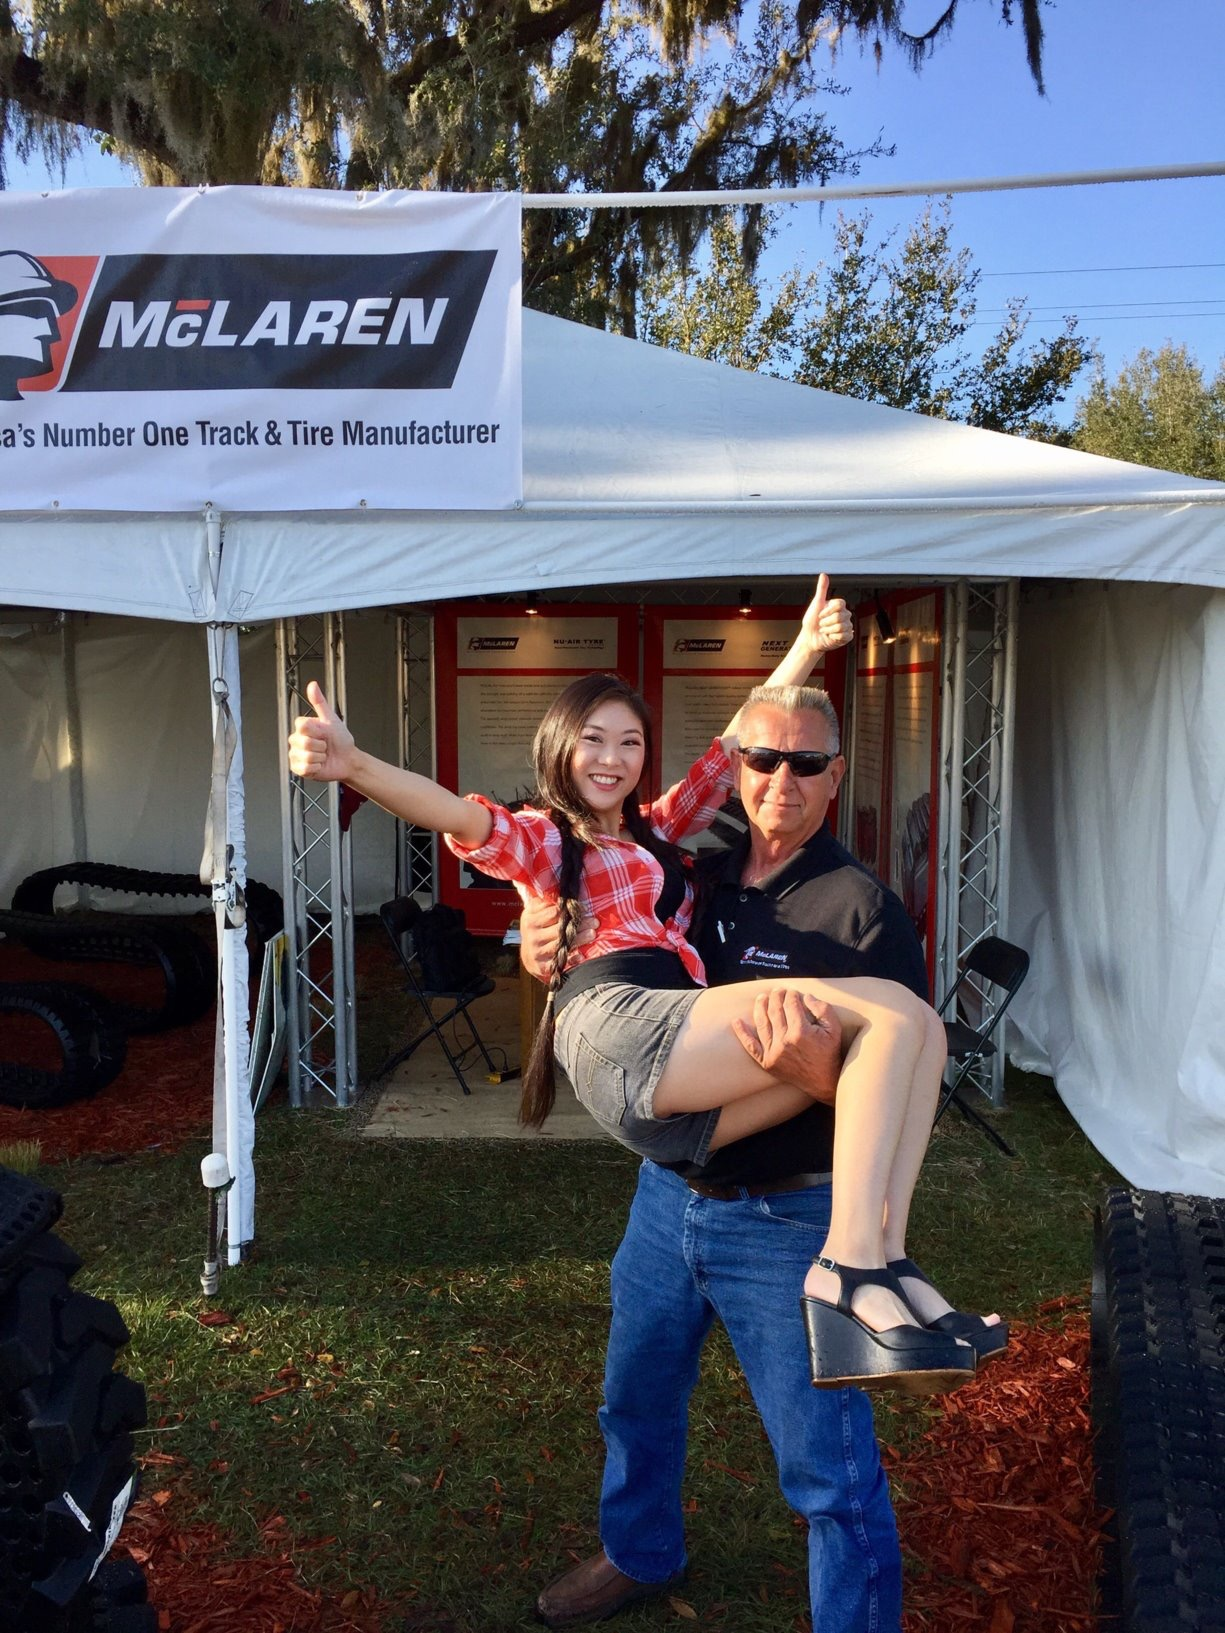 Kristal Lee (Chief of Staff) and Frank Machart (Florida Branch Office Manager) Showing their McLaren Spirit